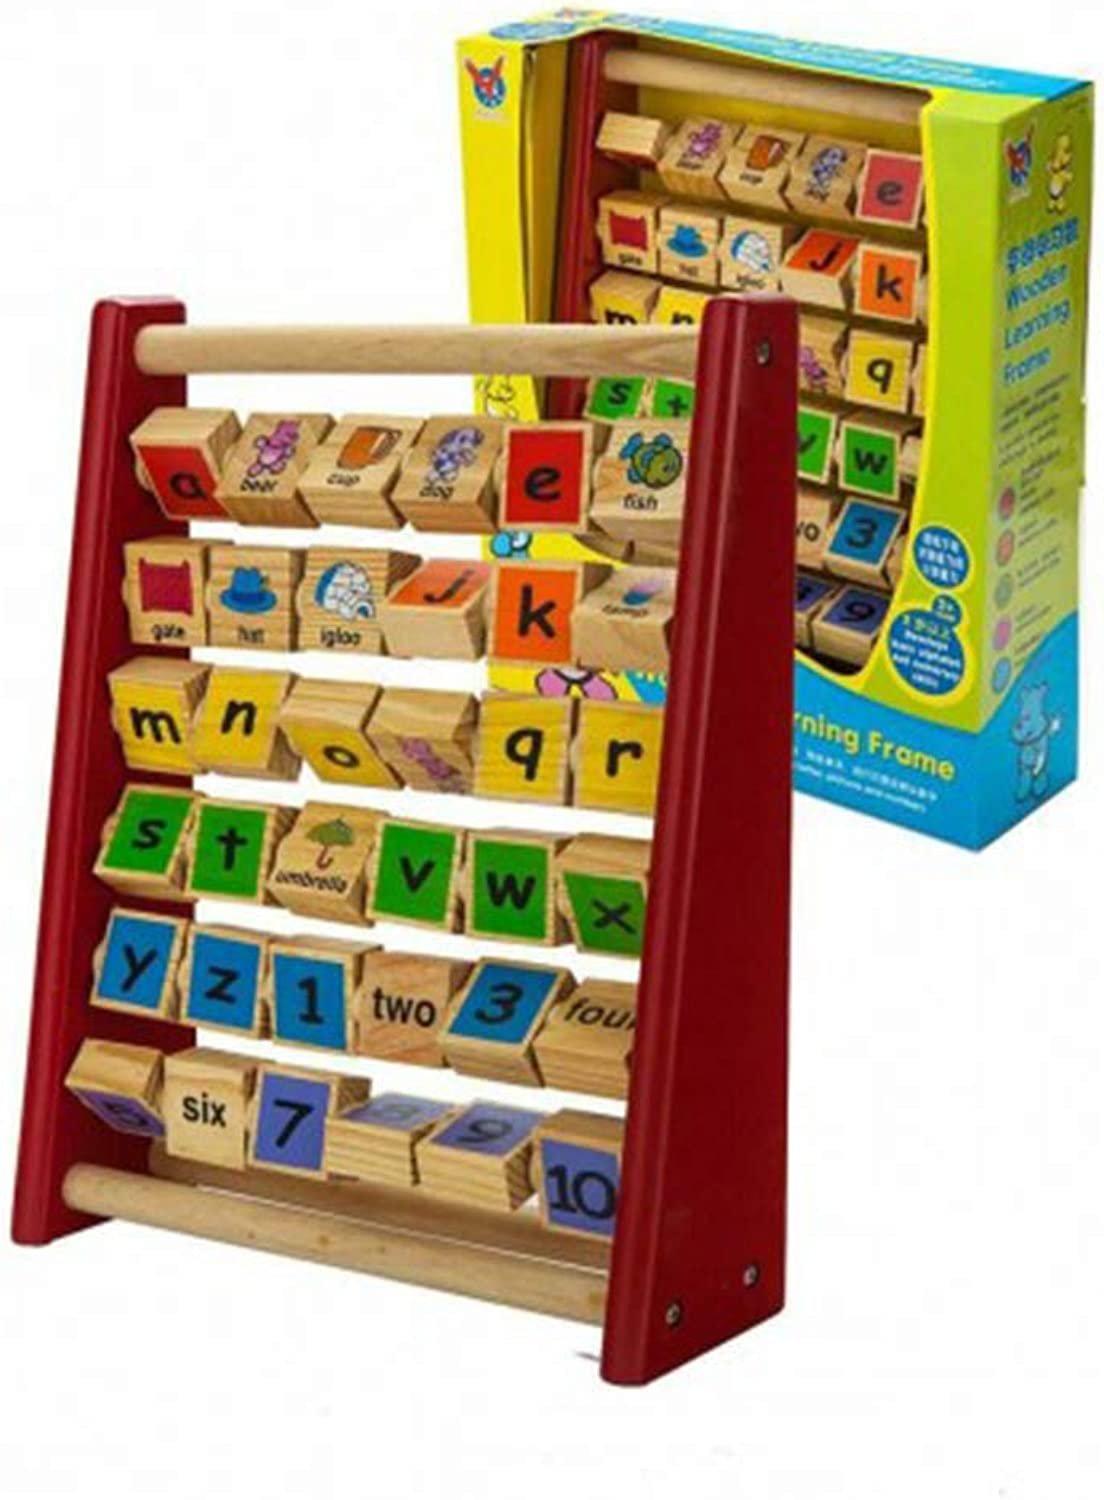 Toytexx Wooden Learning Frame with A Solid Wood Frame and 36 Cubes